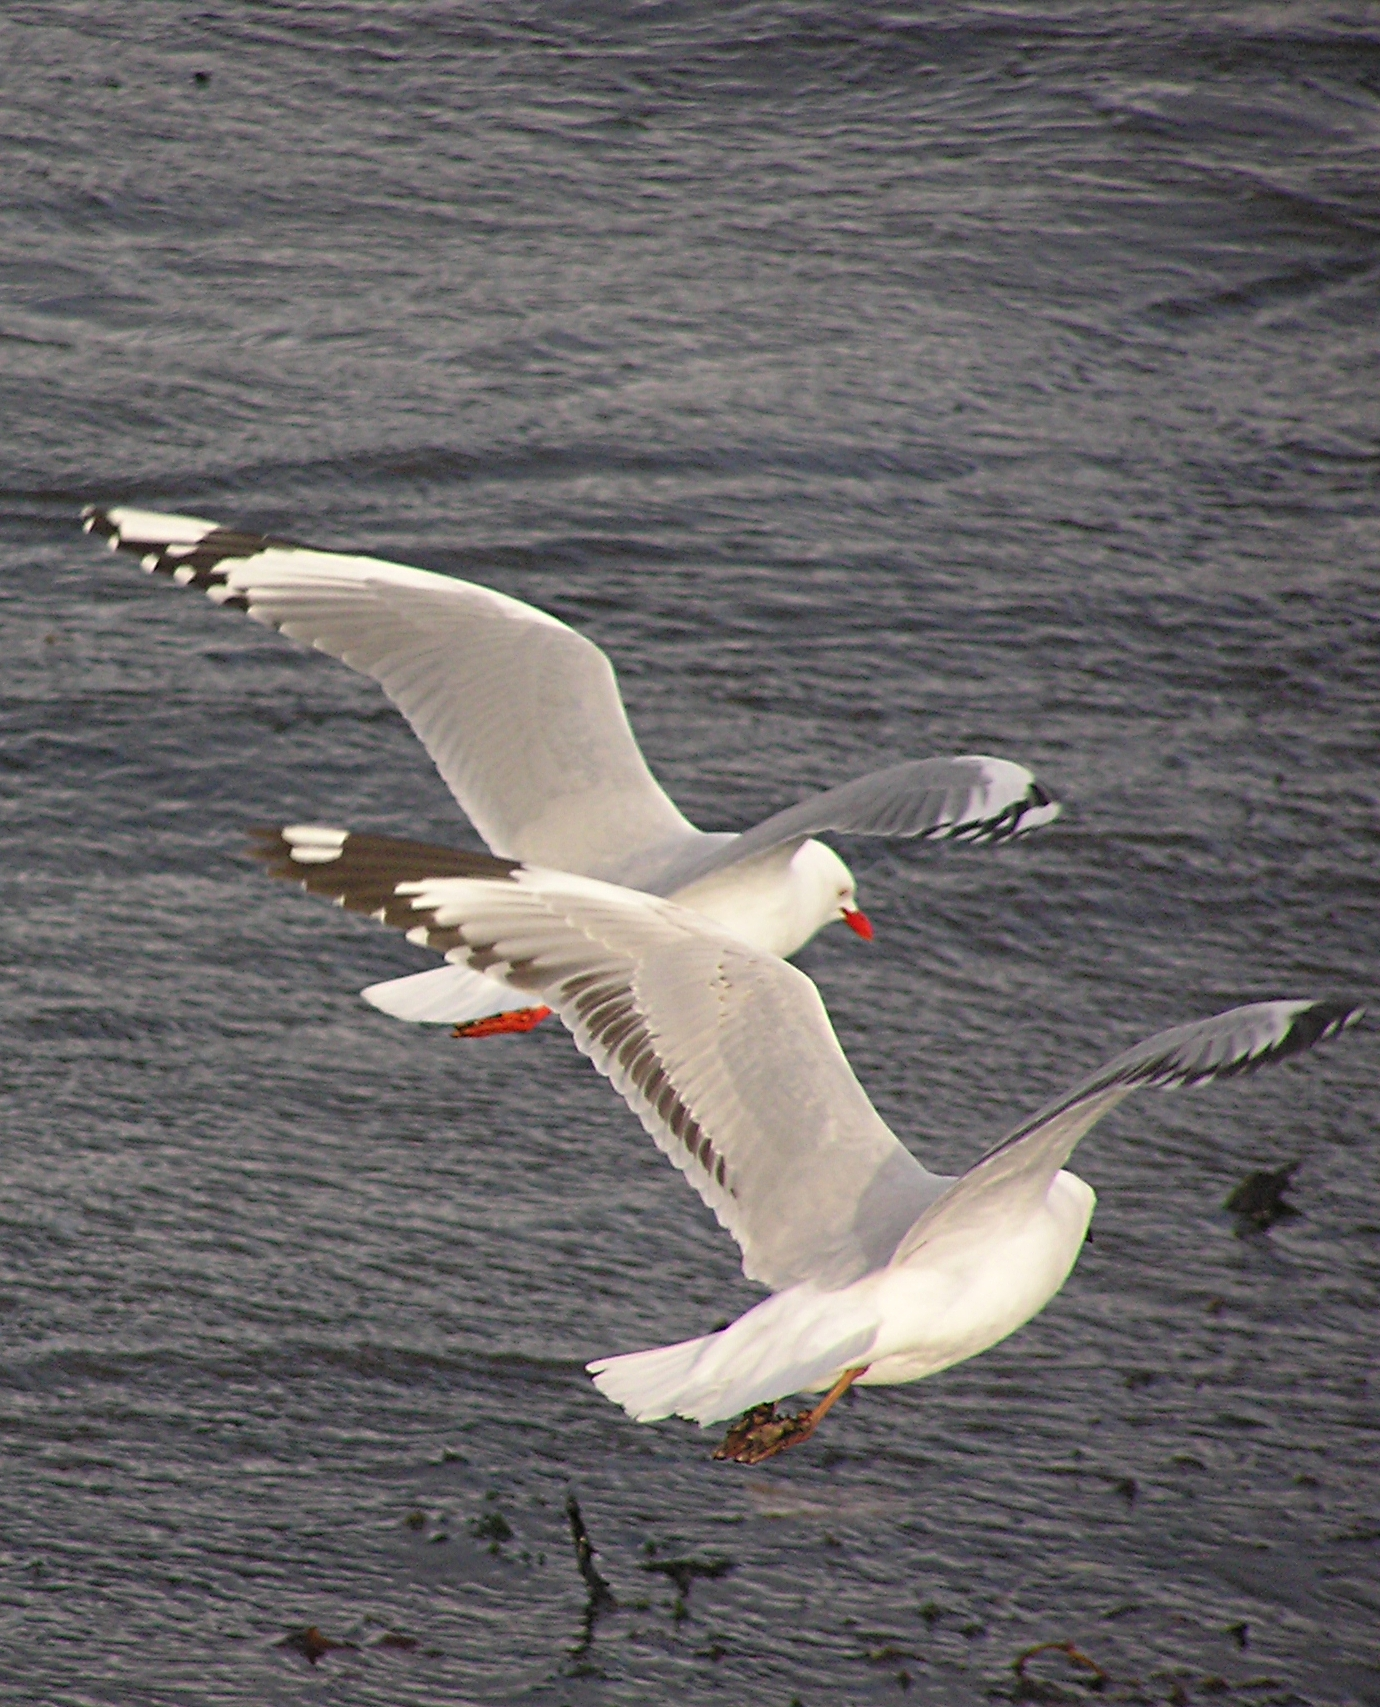 Adult and juvenile red billed gulls (Larus scopulinus) in flight (adult left, juvenile right), showing difference in plumage. Photo taken in Wellington Harbour, Wellington, New Zealand, by Tony Willis on September 5, 2007.